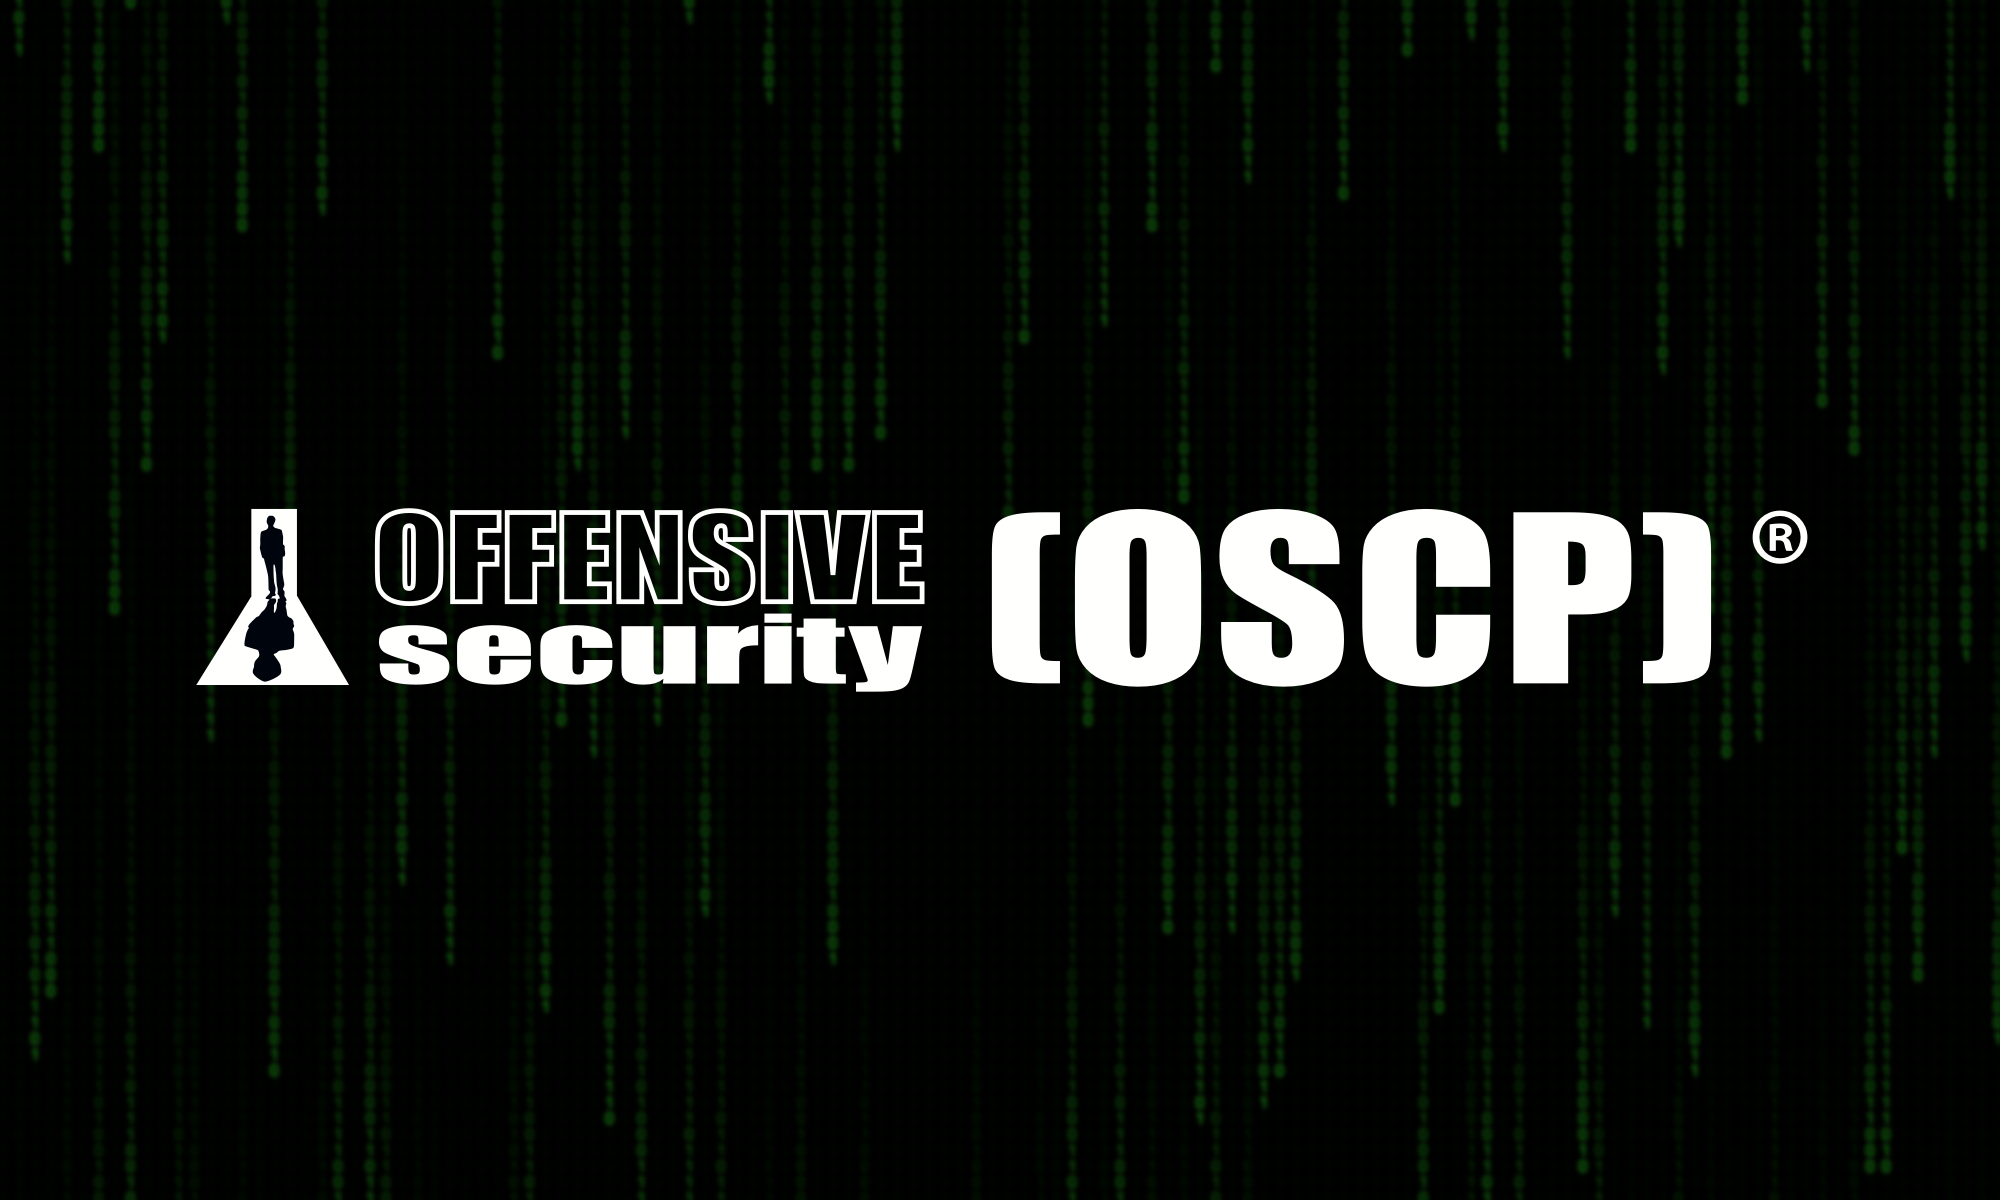 Oscp Certification Course Review